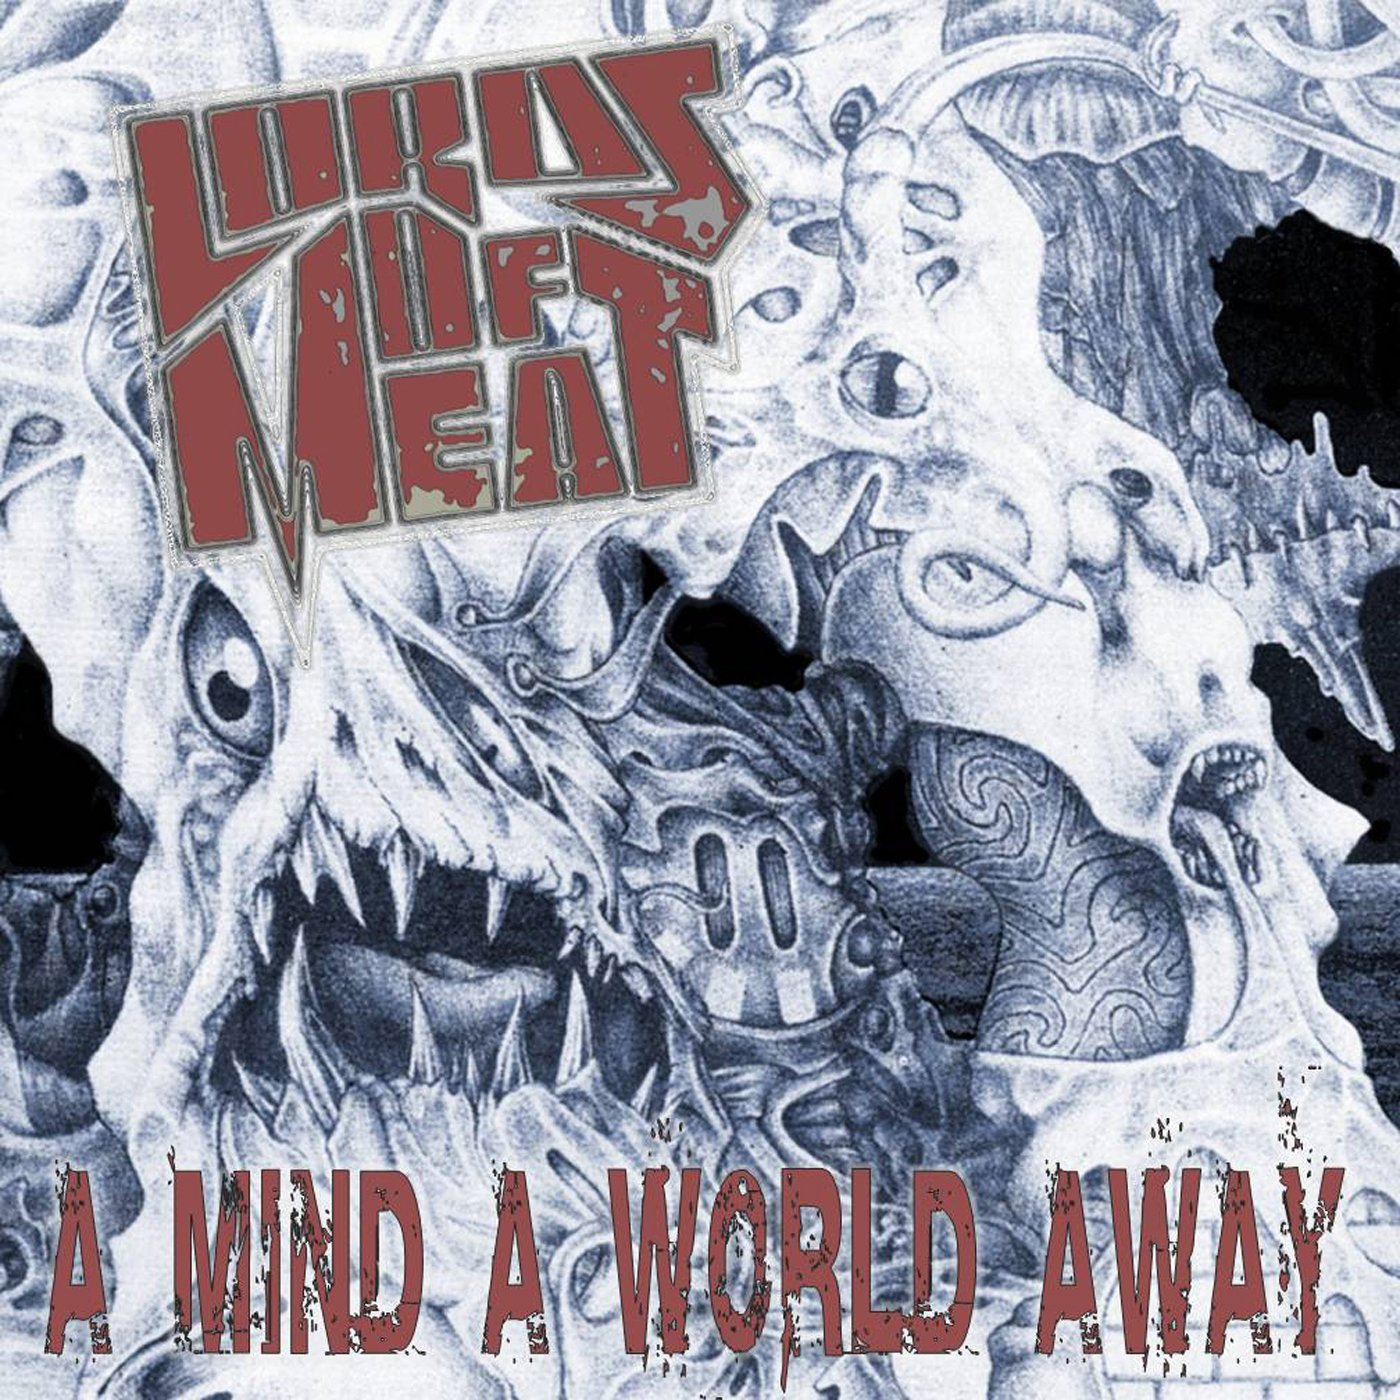 A Mind A World Away by Lords of Meat USB Wristband